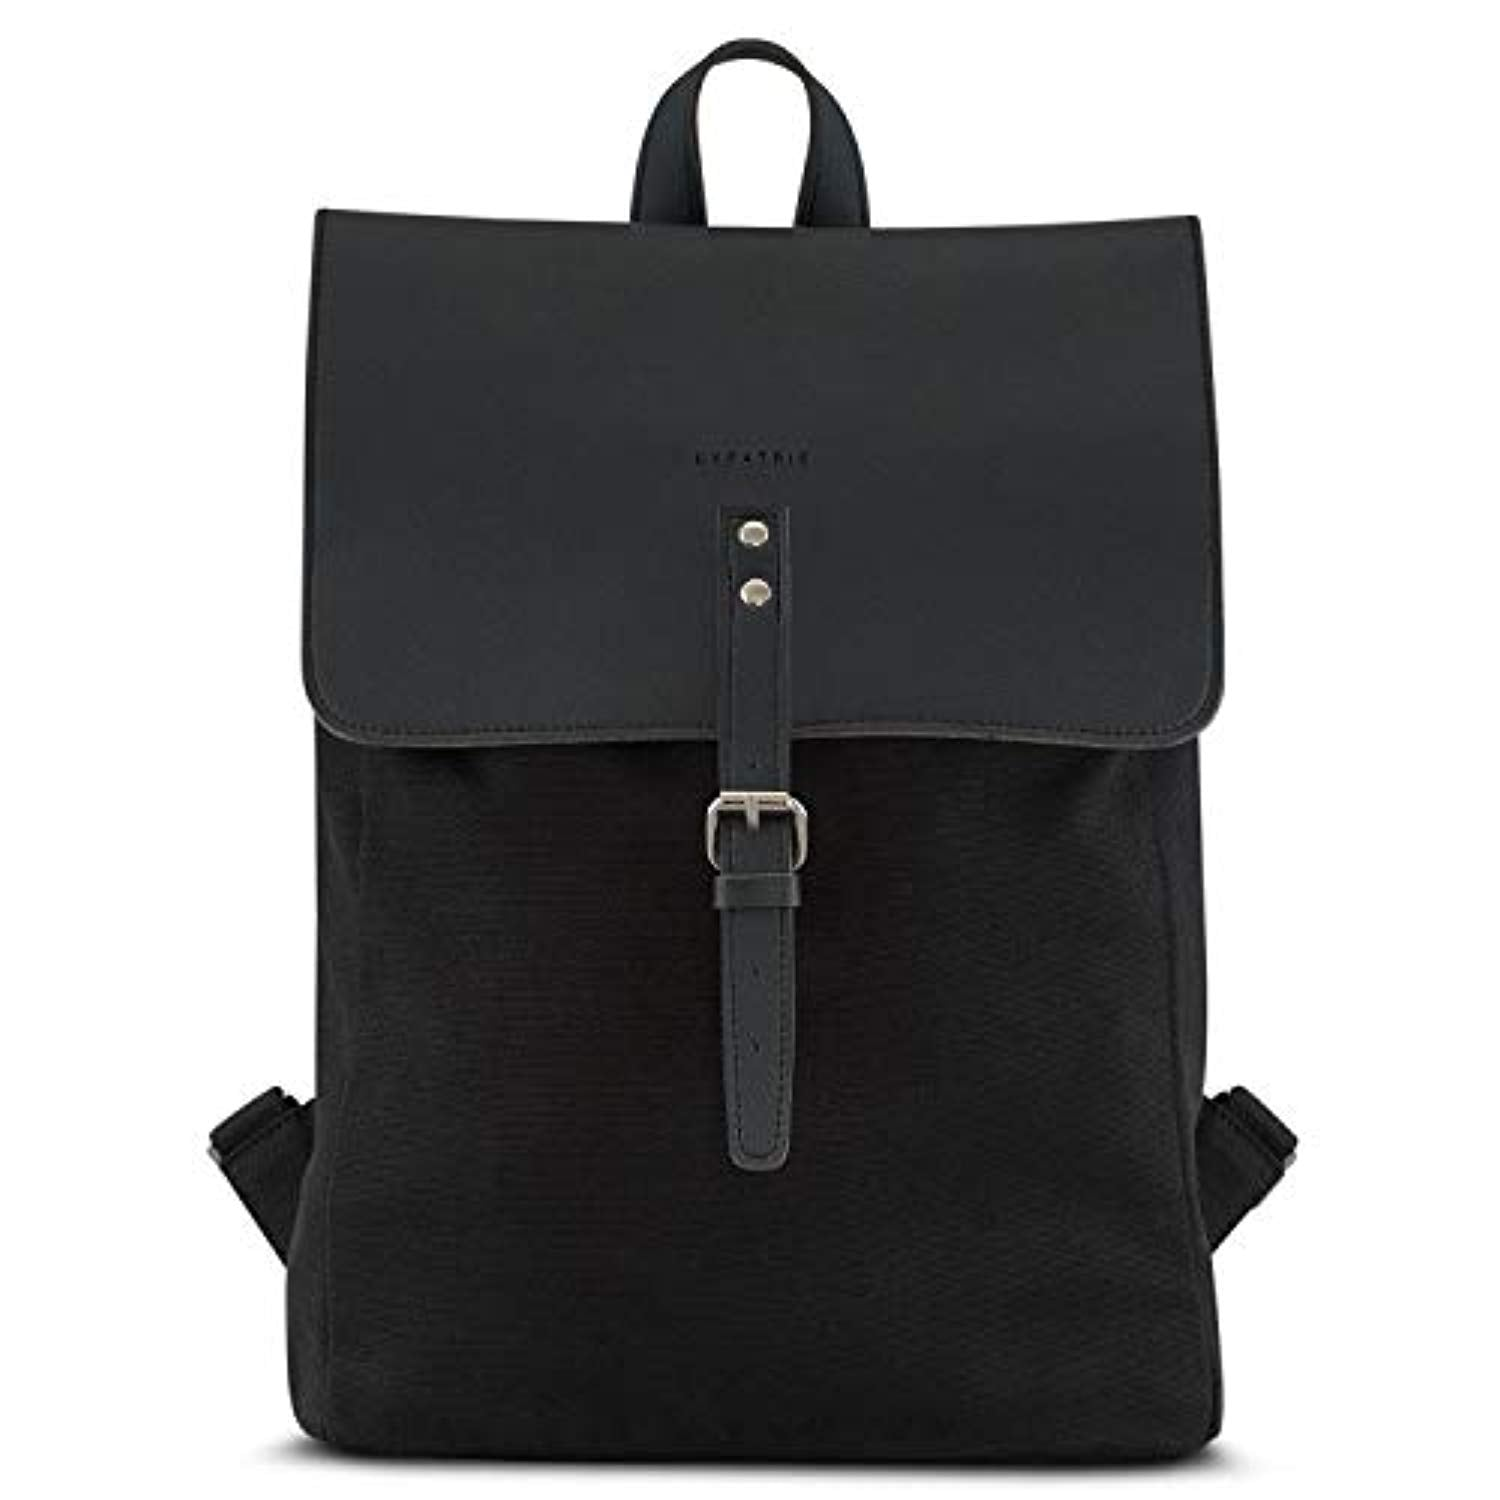 10a391b8b6 Oxford Canvas Satchel All Black Backpack – harveylanebags